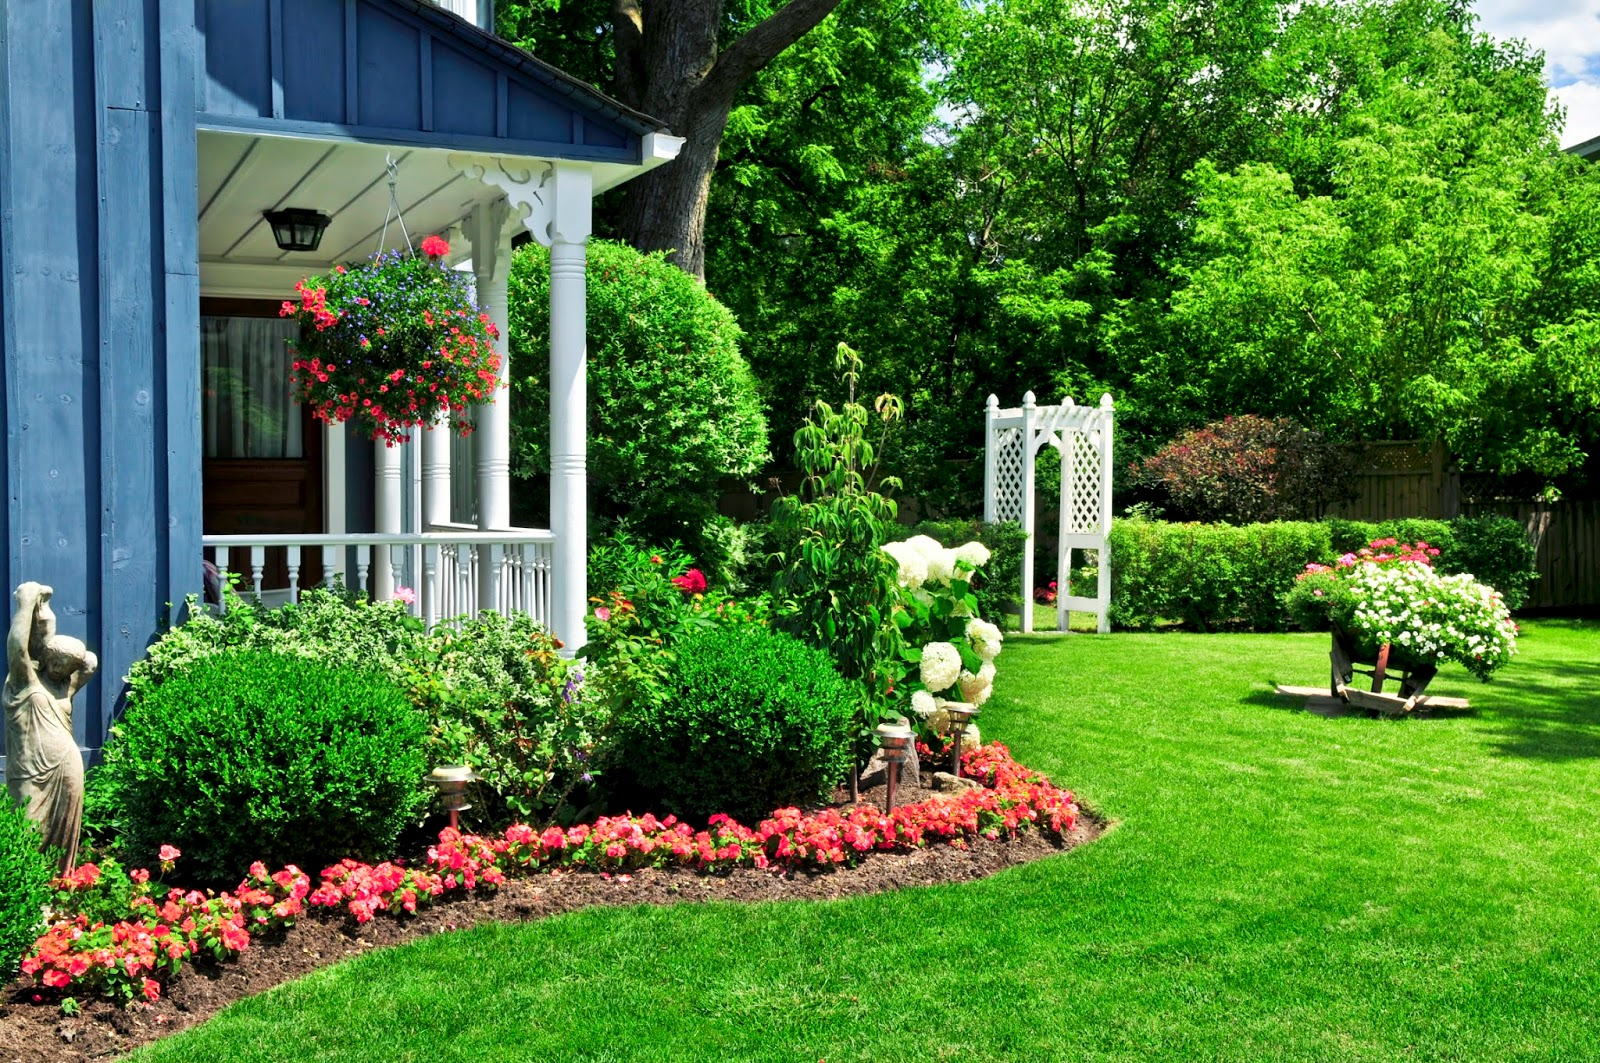 Home gardenideas for beauty